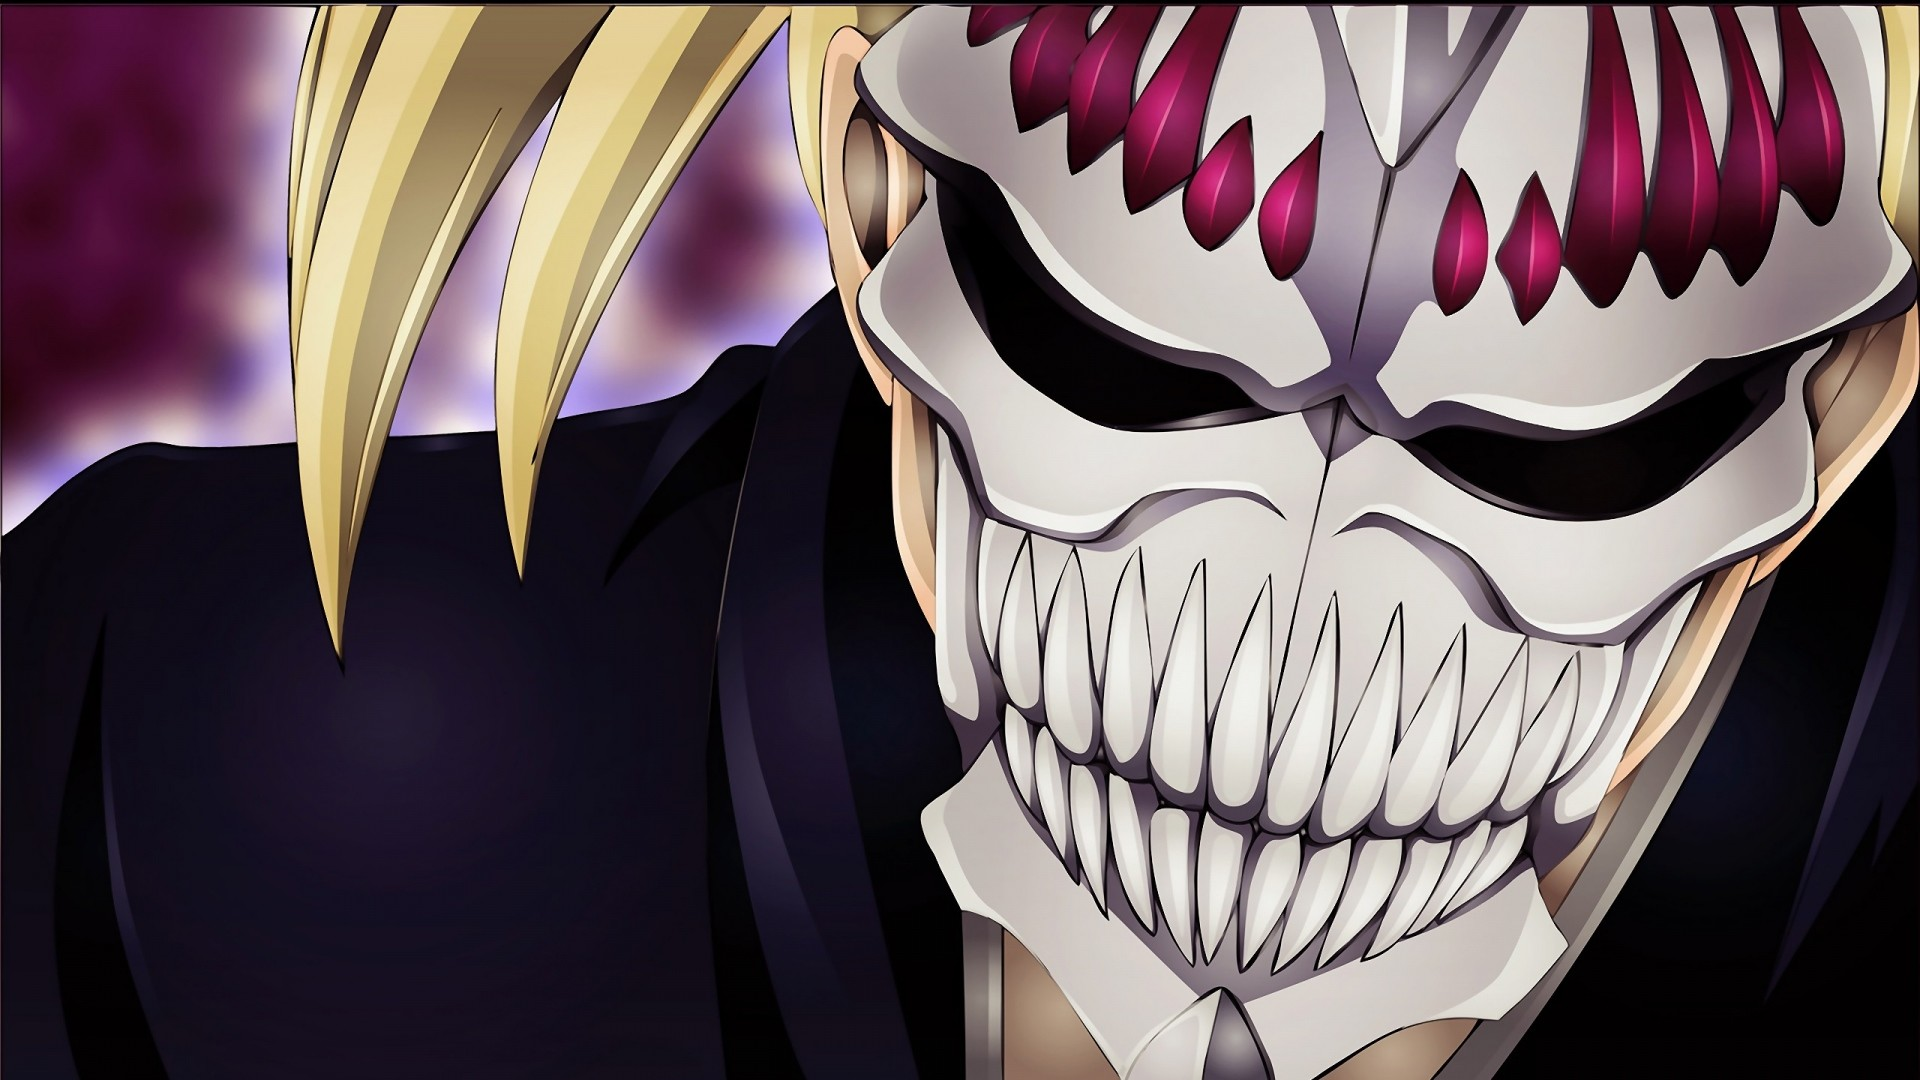 1920x1080 Preview wallpaper bleach, sarugaki hiyori, mask, man